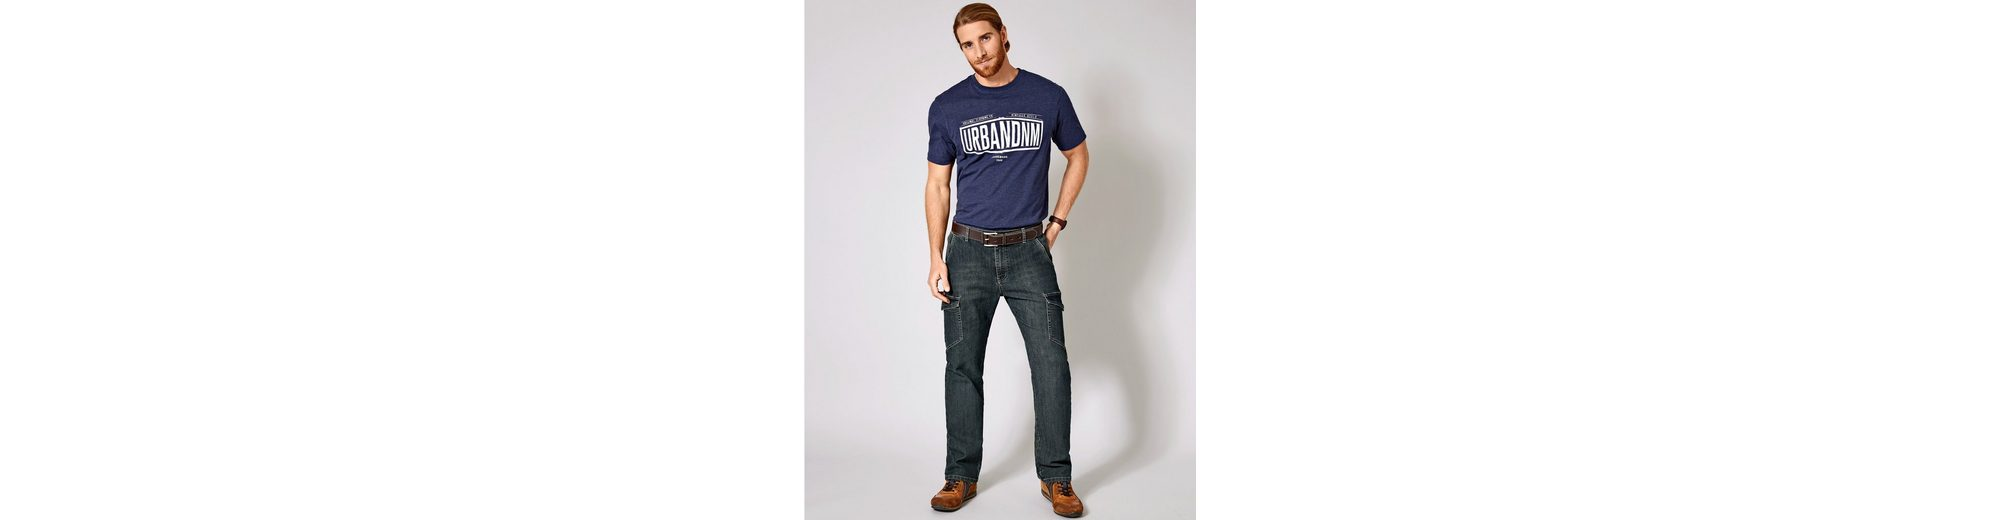 Men Plus by Happy Size Cargo-Jeans Billig Verkauf Mit Paypal Rabatt-Outlet-Store Billig Verkauf Mit Mastercard Spielraum Großer Verkauf Heißen Verkauf Online q6DK6Bb